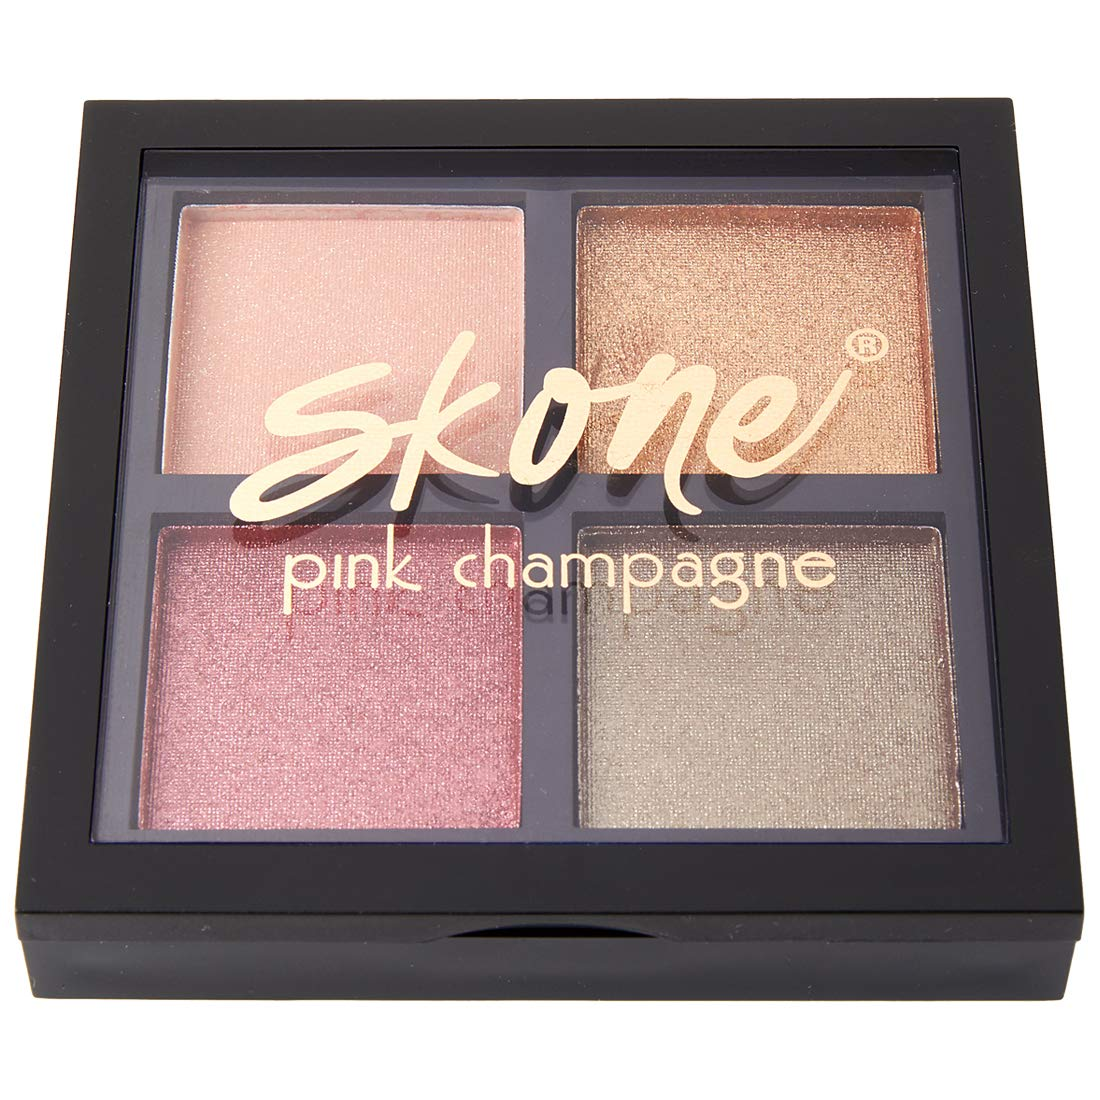 Pink Champagne Eyeshadow Quad Makeup - Featuring Skone Cosmetics Luxe Formula for Universally Flattering, Shimmery Shades of Beautiful Champagne Tones